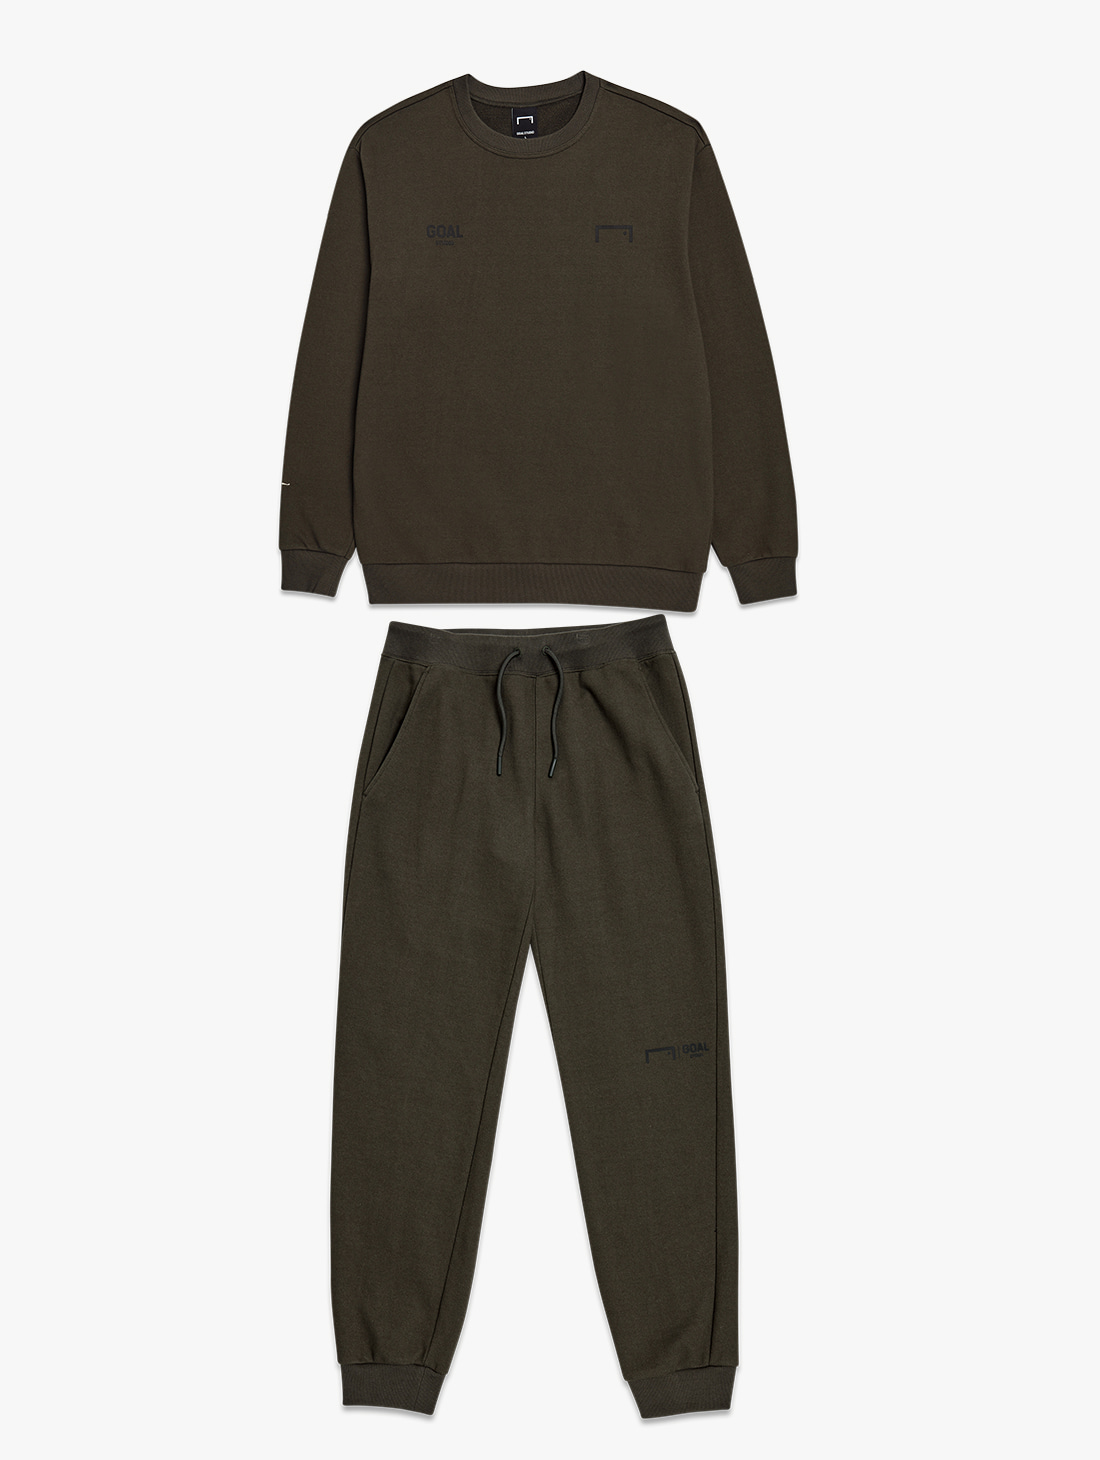 GOALSTUDIO [10% OFF] SIGNATURE LOGO SWEATSHIRT & GOAL KNIT JOGGER PANTS 2.0 SET